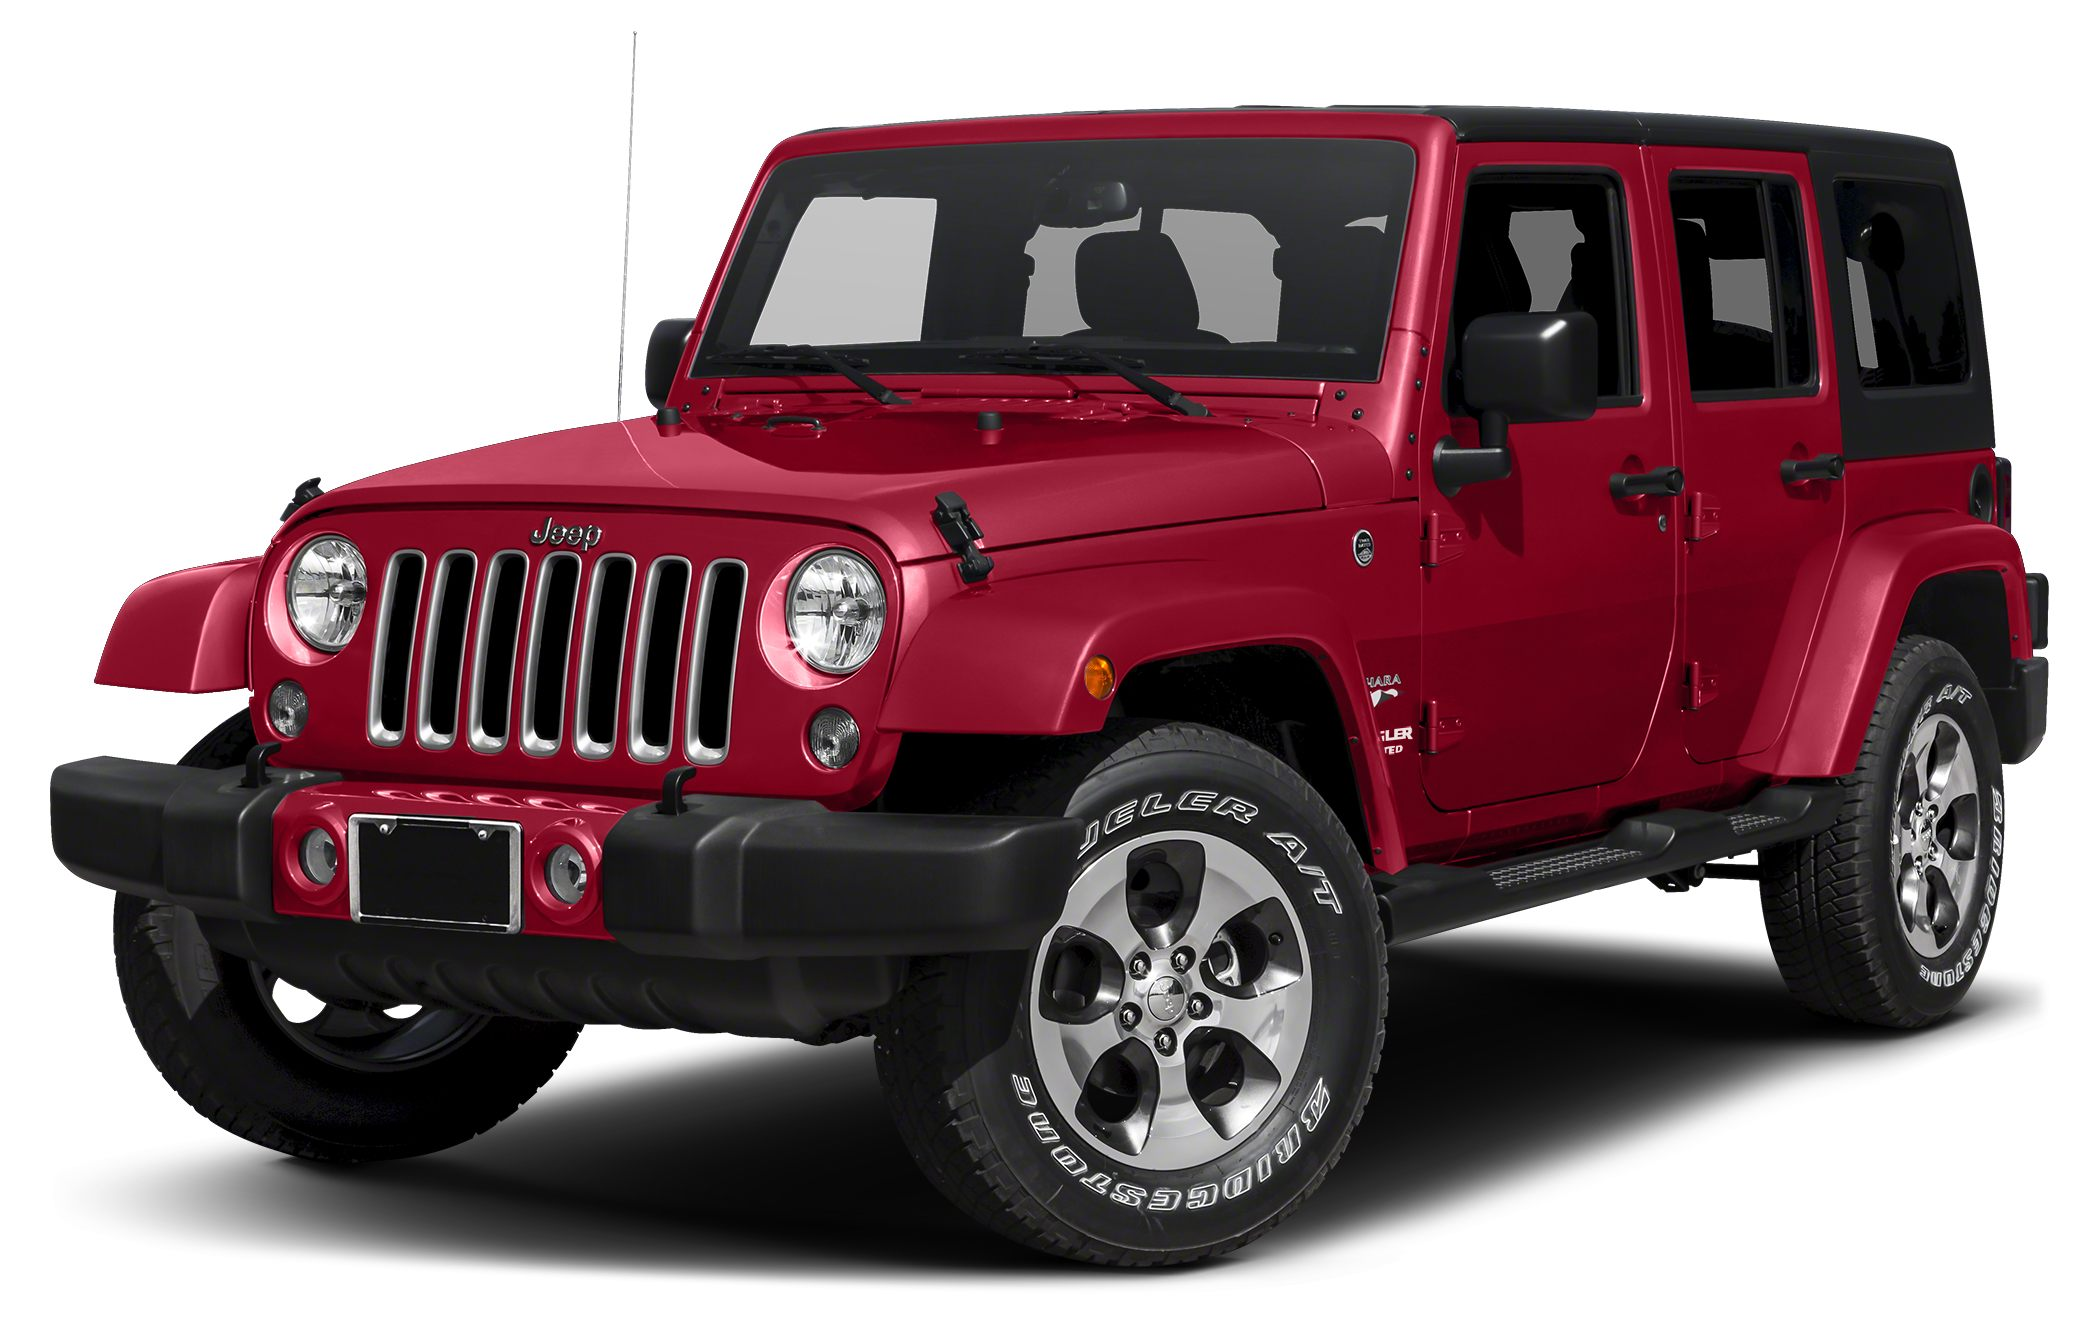 2015 Jeep Wrangler Unlimited Sahara DISCOVERY AUTO CENTER IS PROUD TO OFFER THIS NEARLY NEW 2015 J